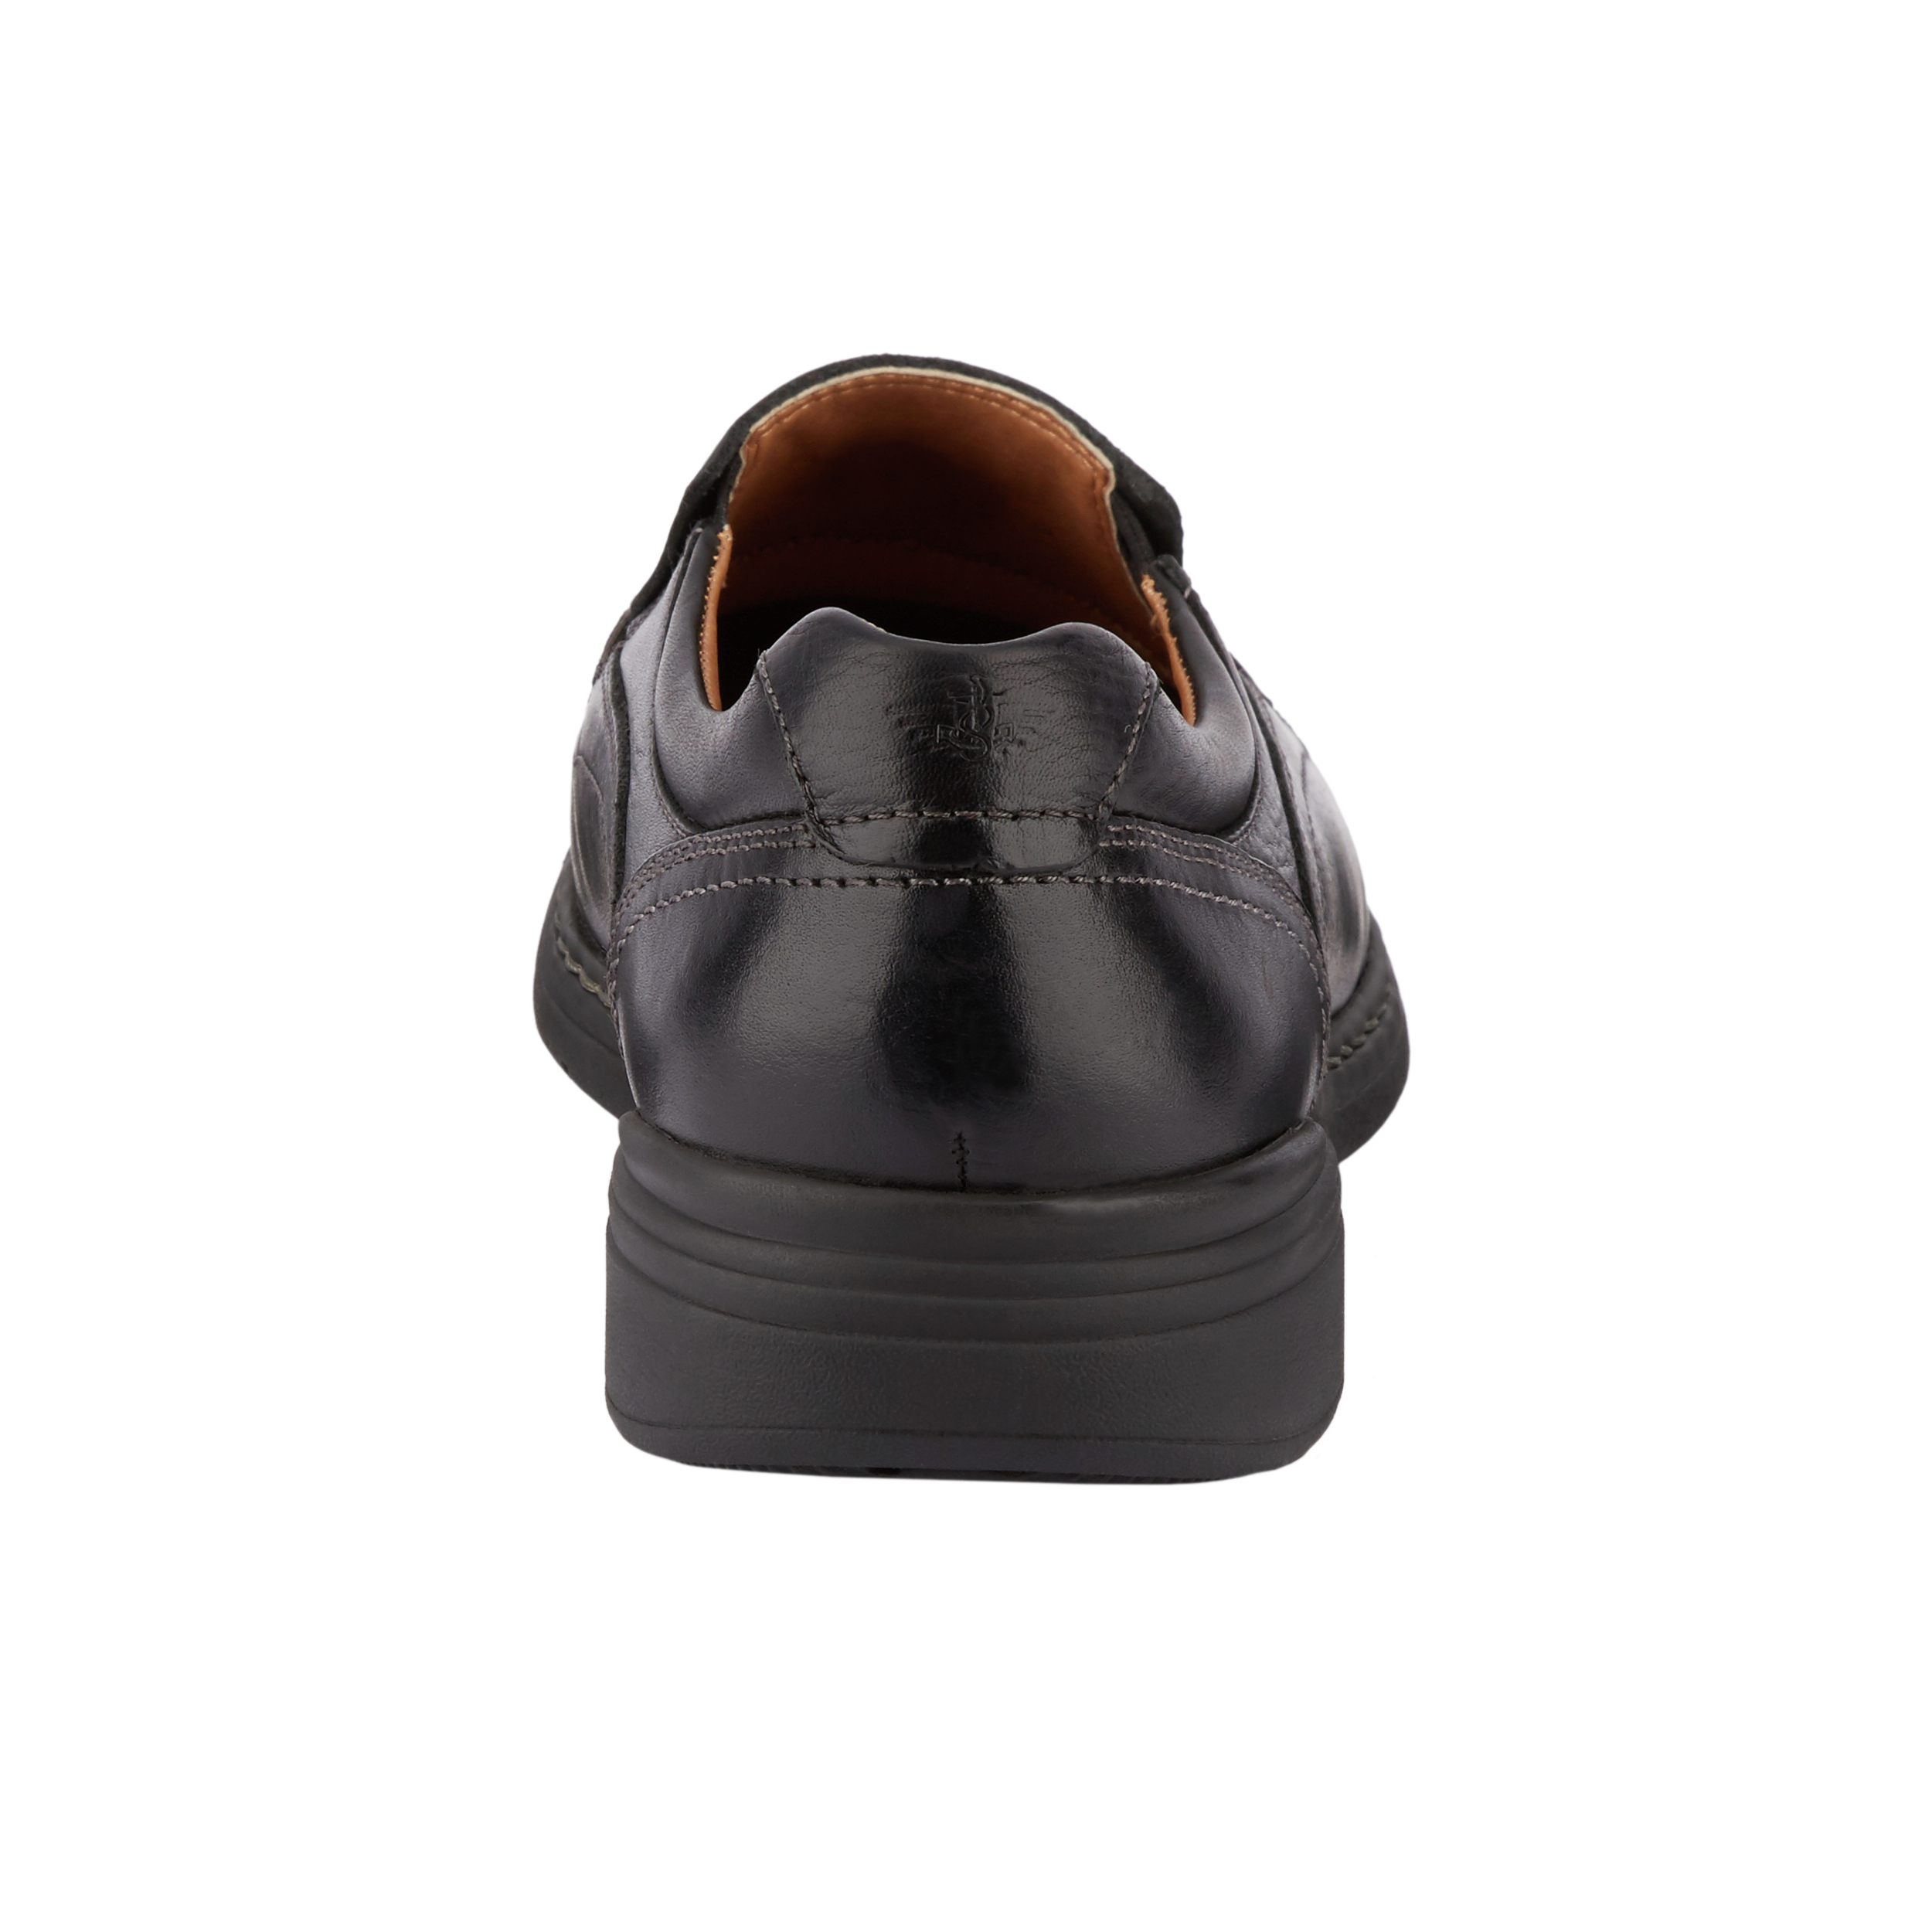 Dockers-Mens-Mosley-Genuine-Leather-Dress-Casual-Slip-on-Rubber-Sole-Shoe thumbnail 9